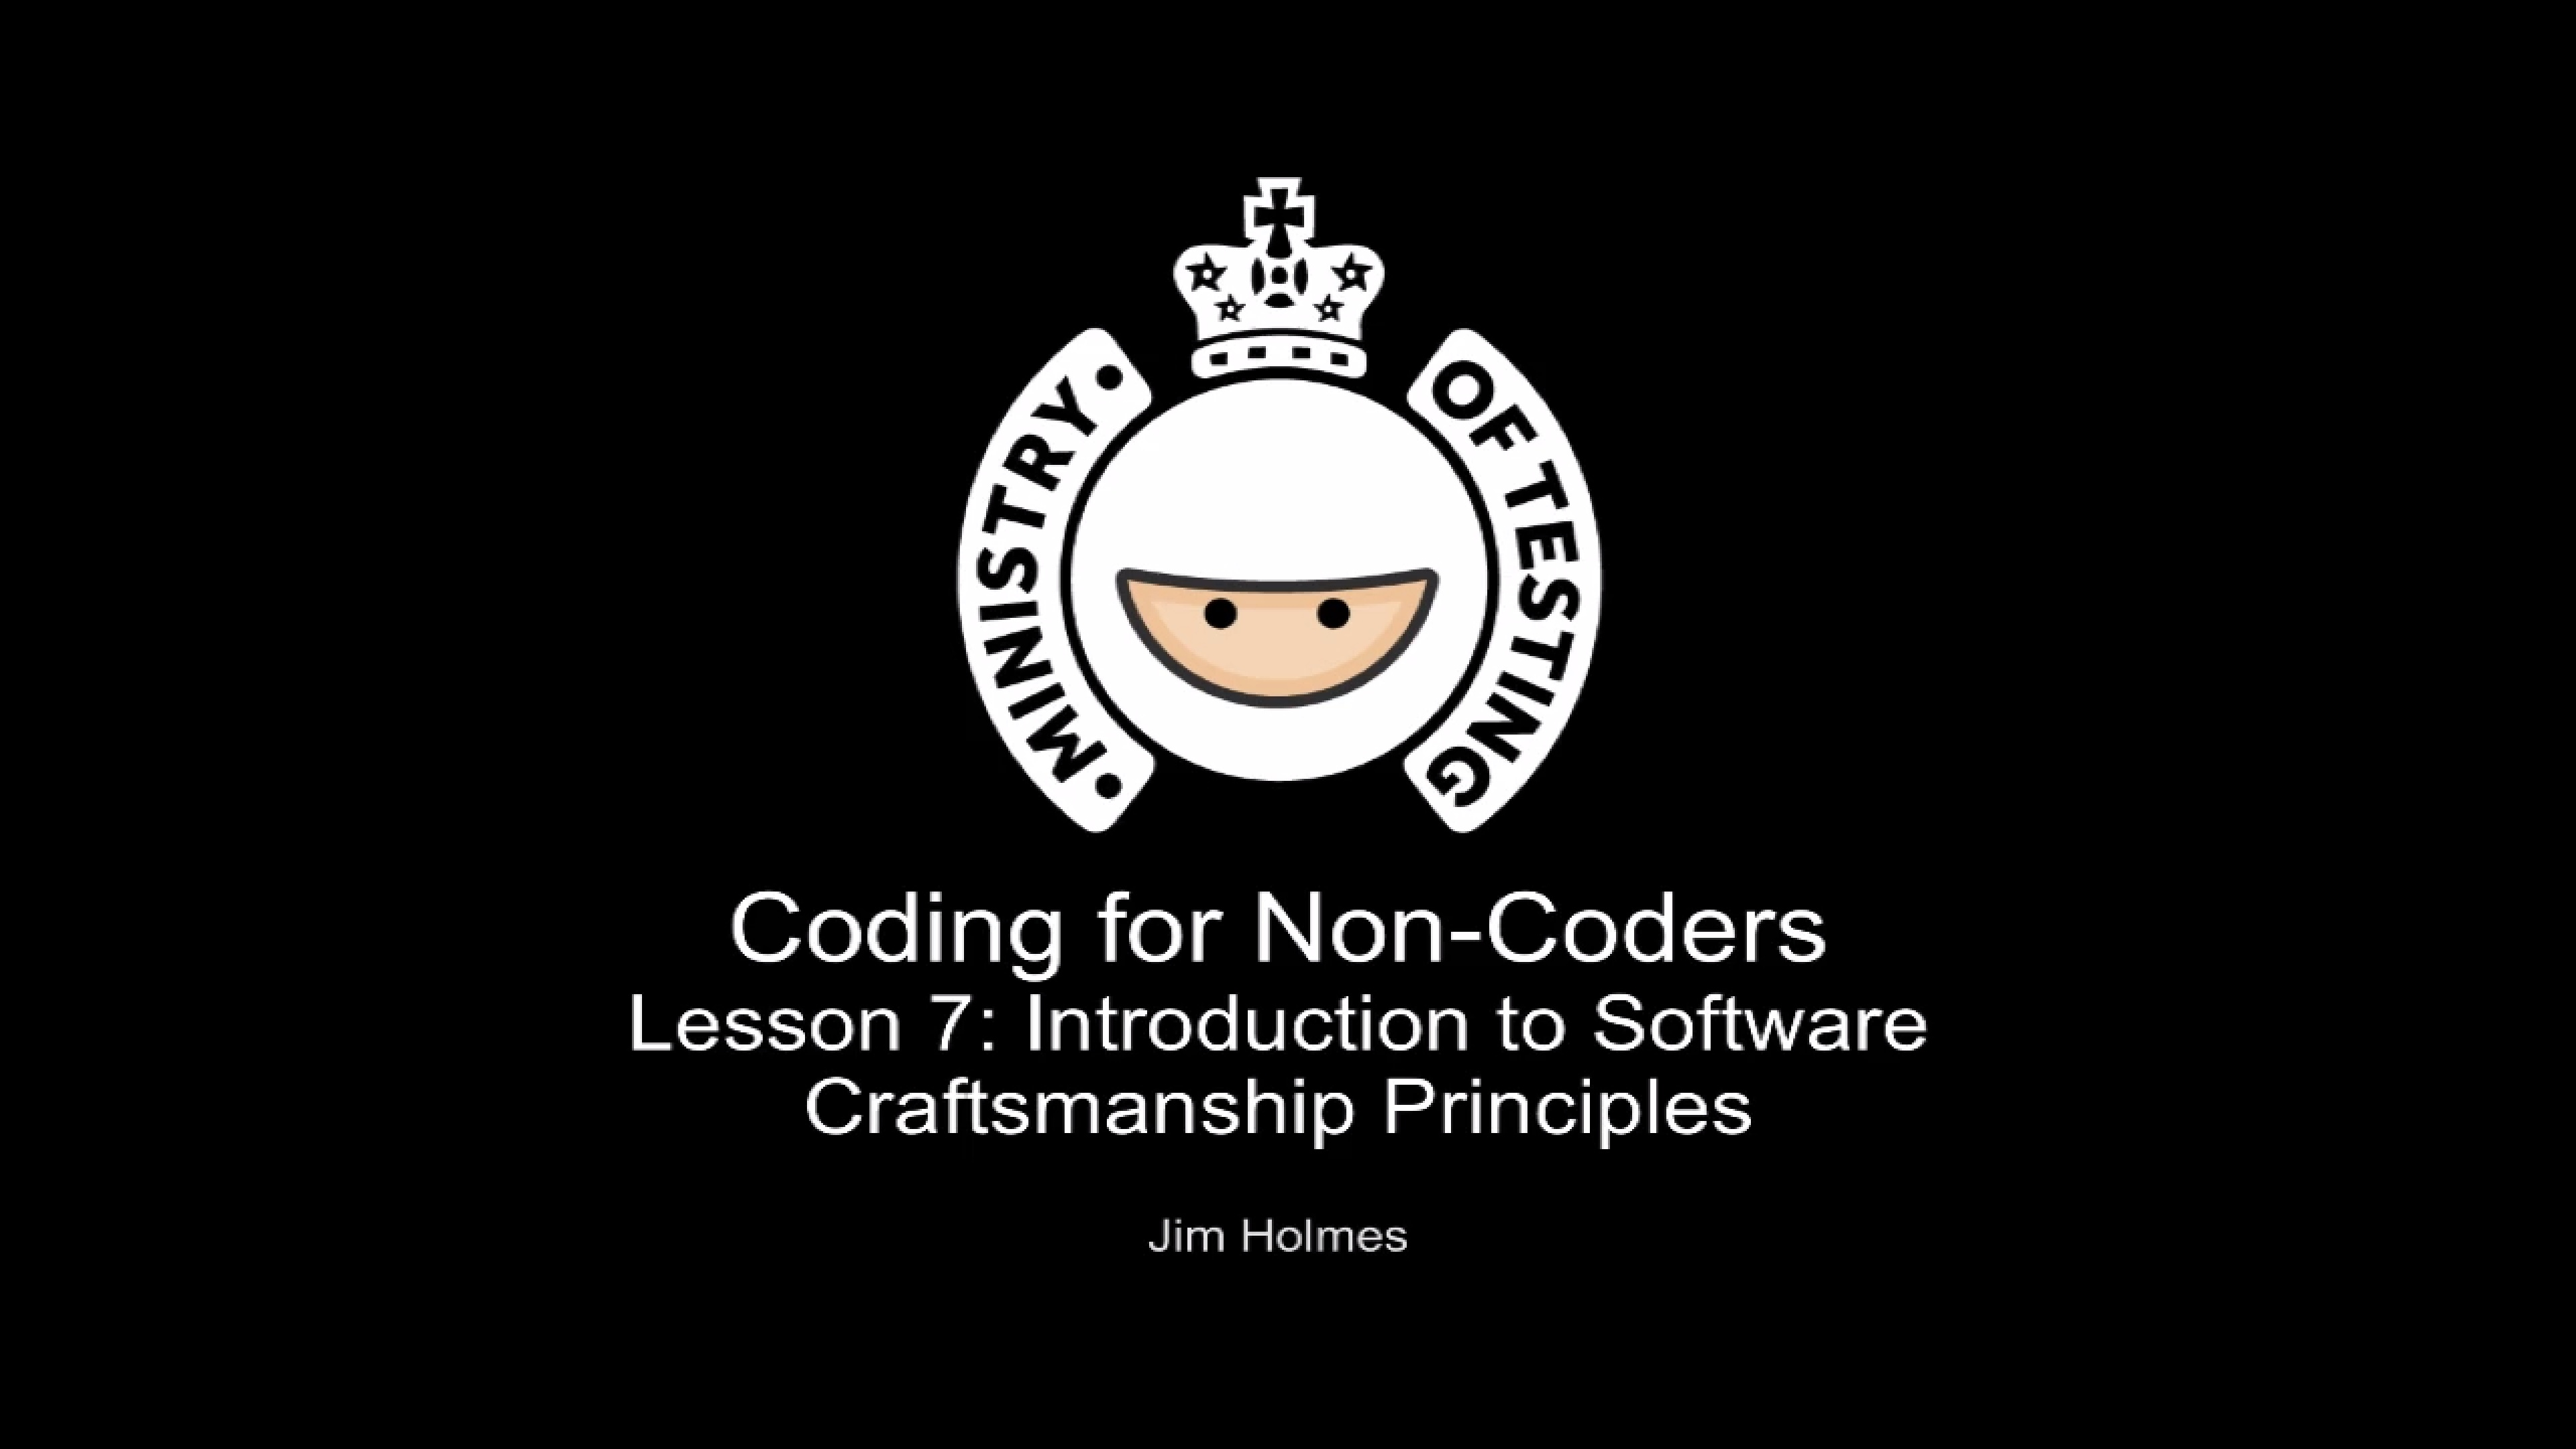 Introduction to Software Craftsmanship Principles